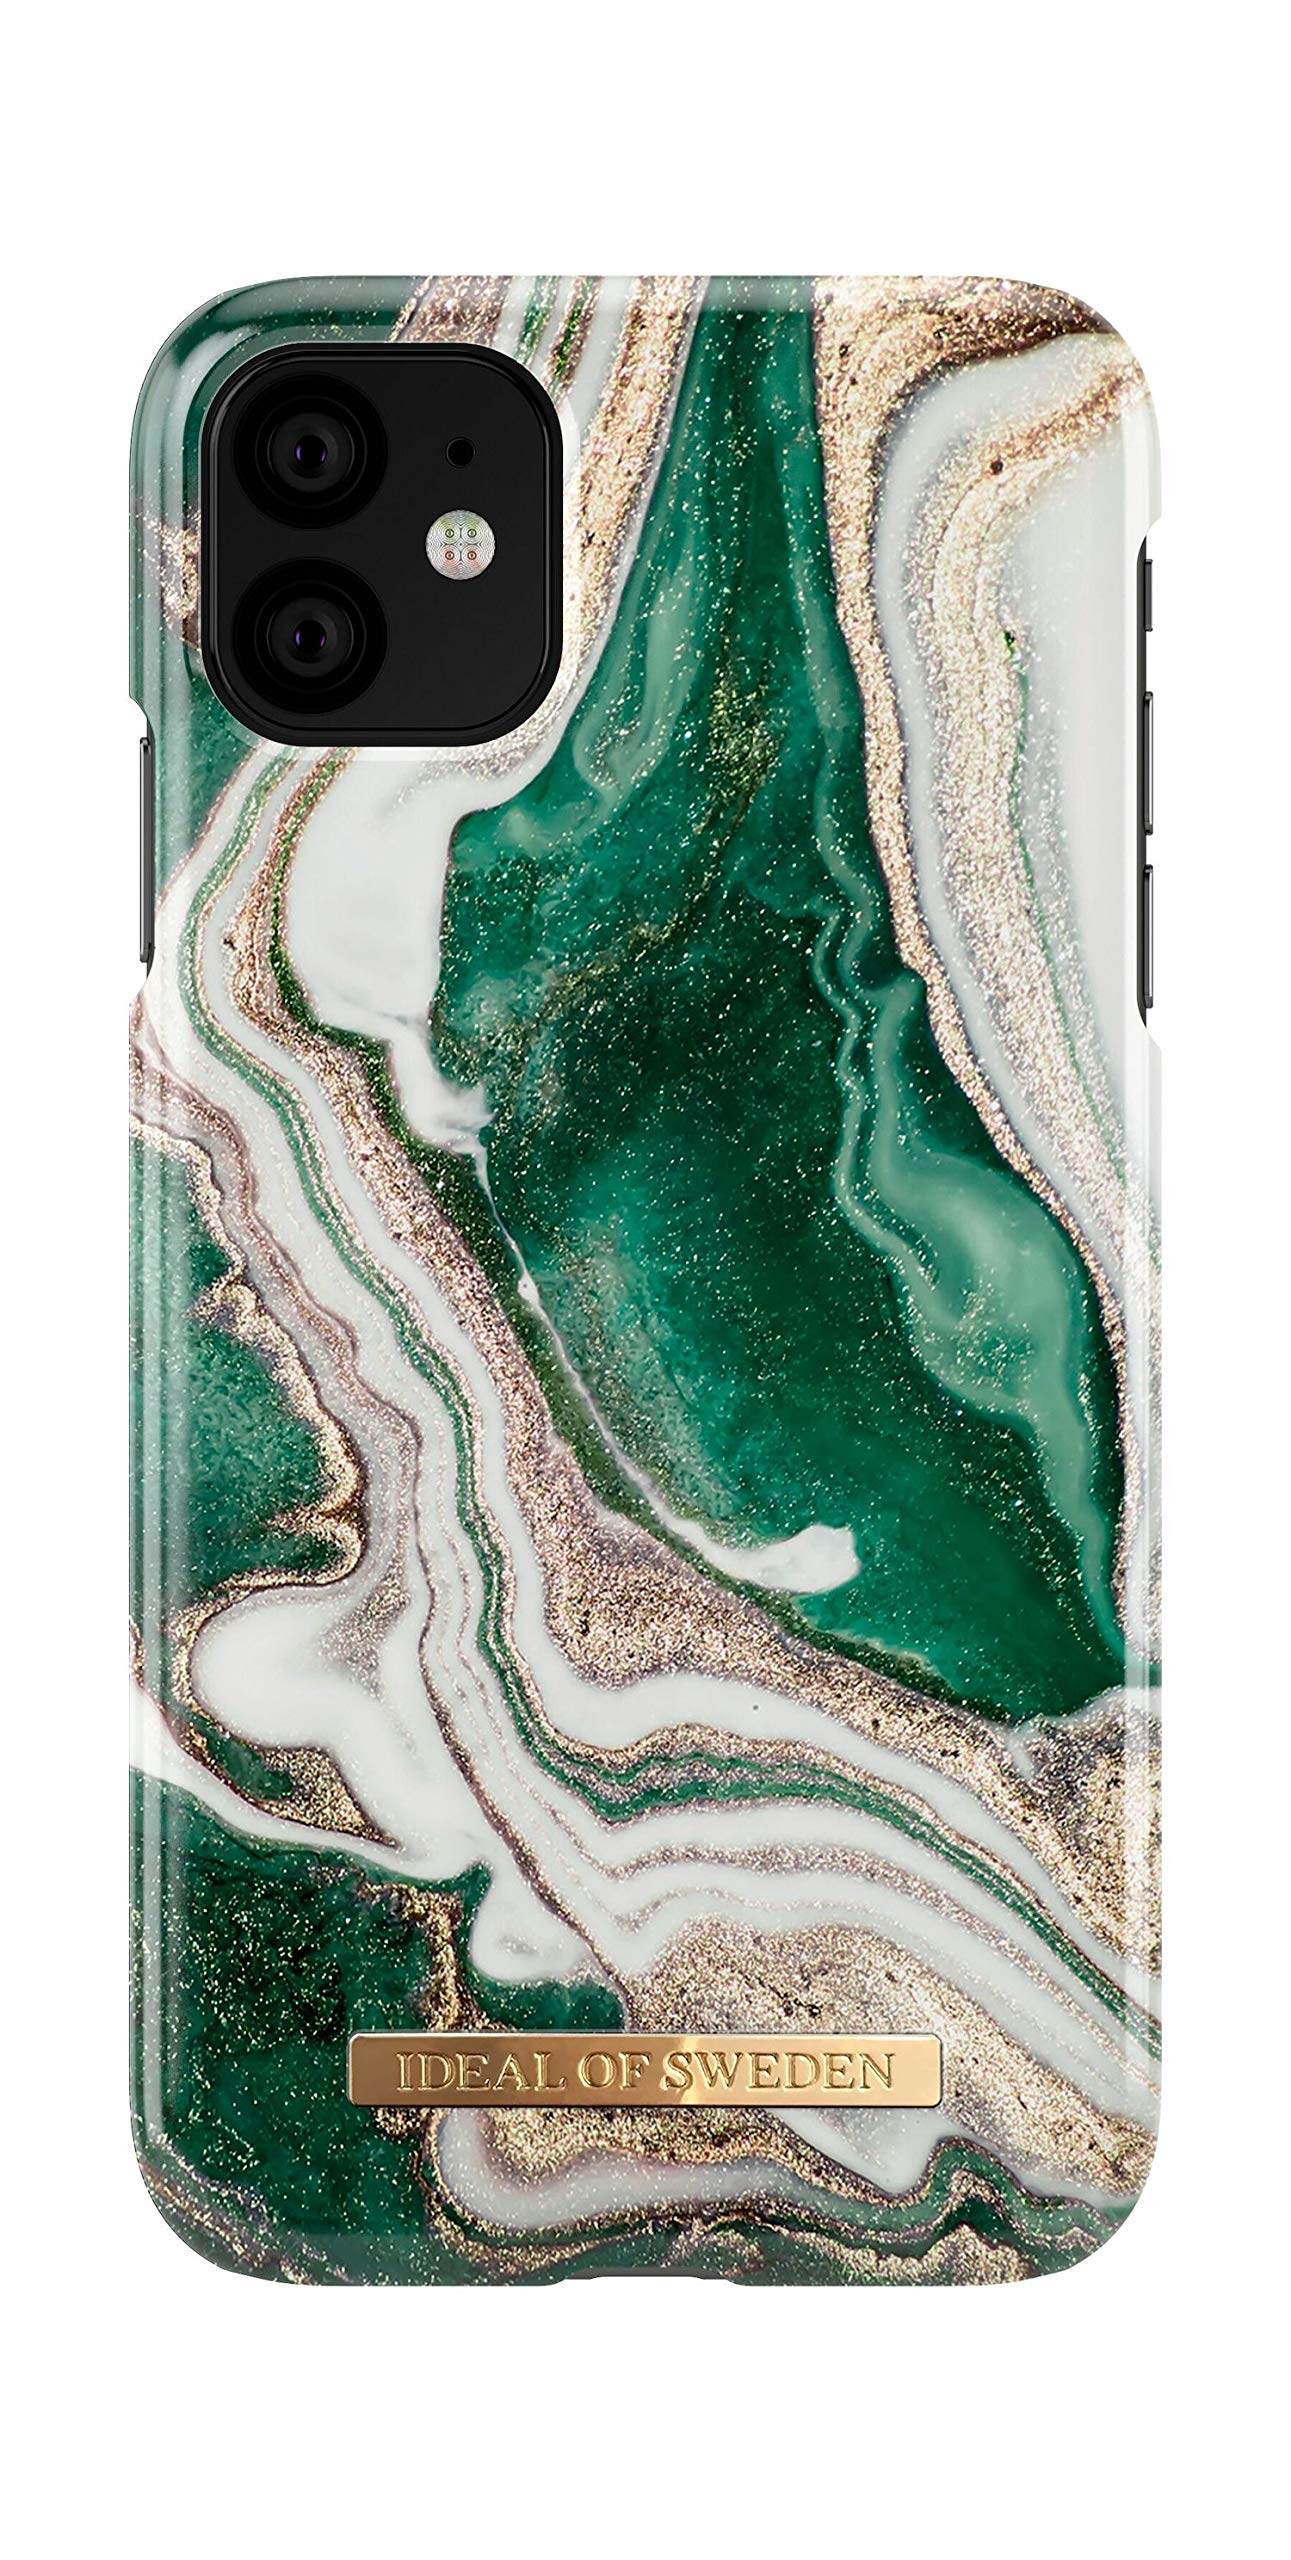 iDeal Of Sweden Mobile Phone Case for iPhone 11 (Microfiber Lining, Qi Wireless Charger Compatible) (Golden Jade Marble)